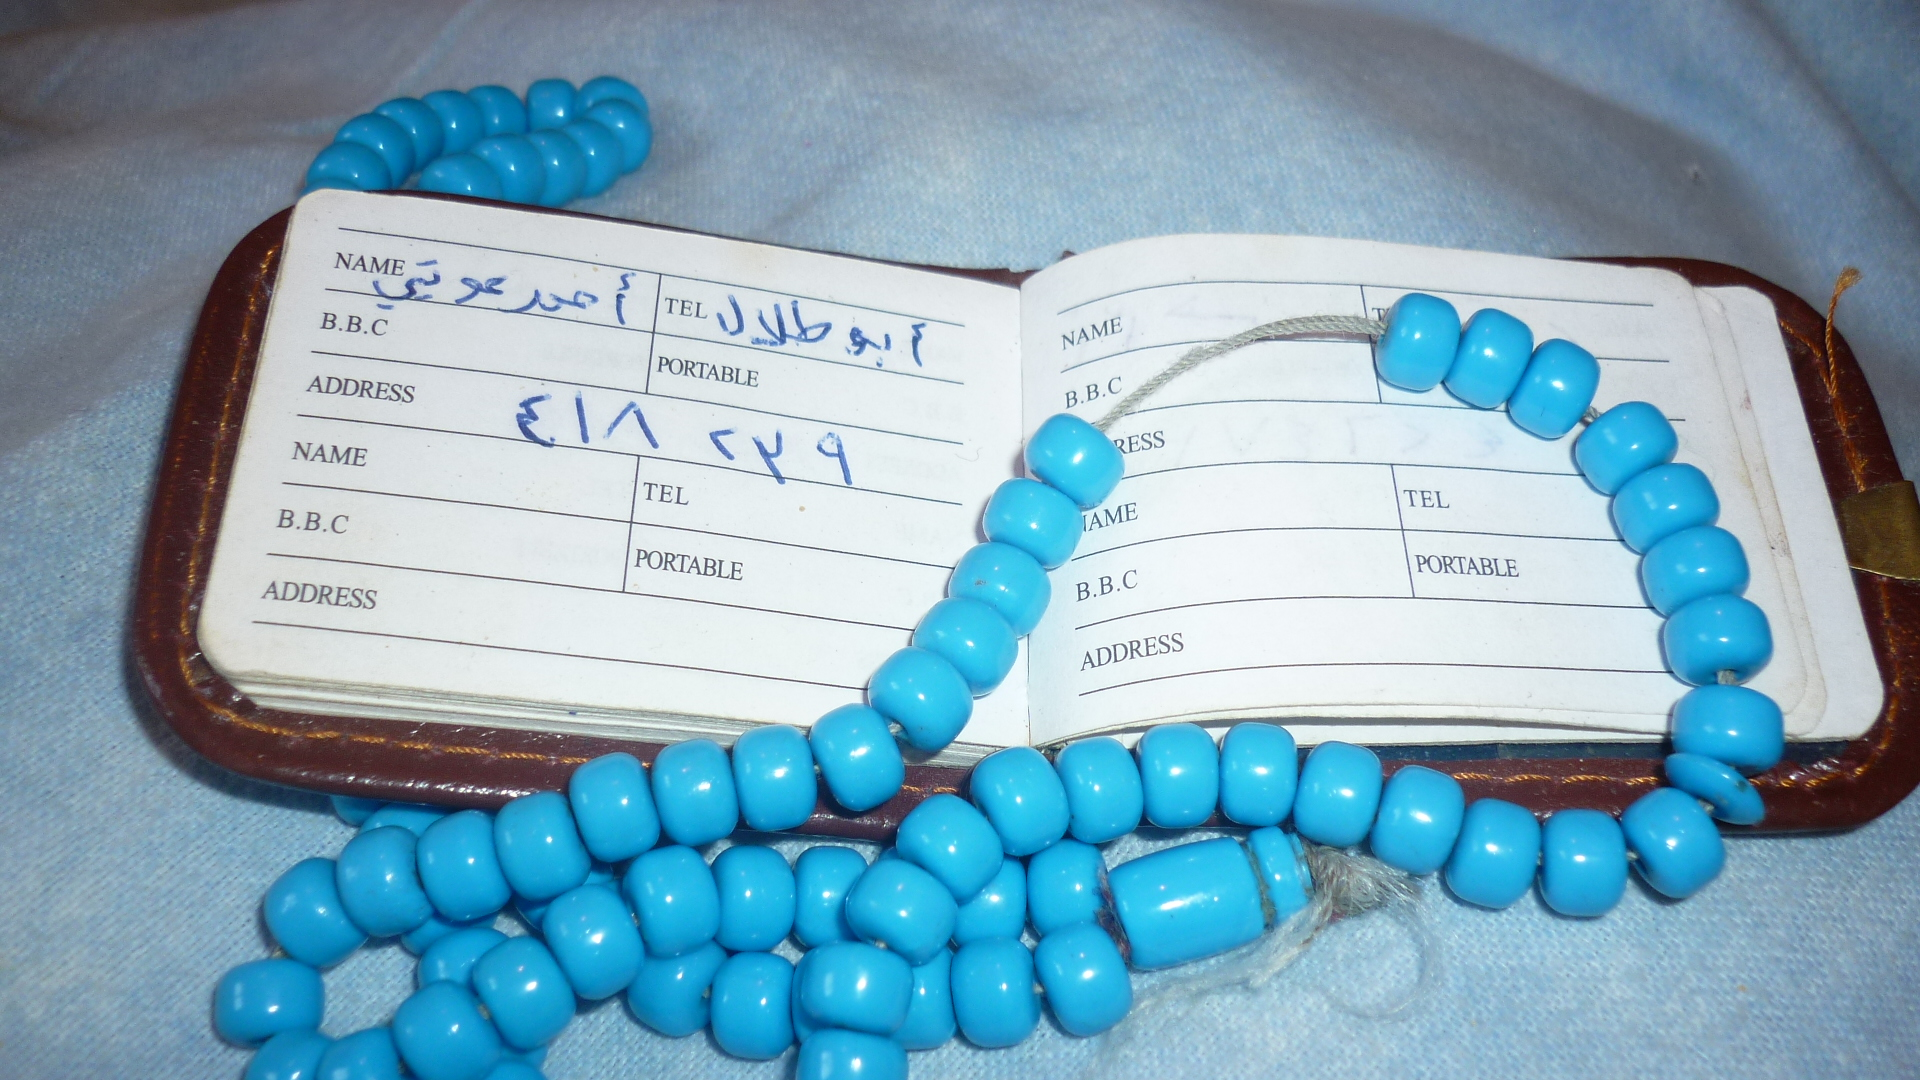 Beads and phone book